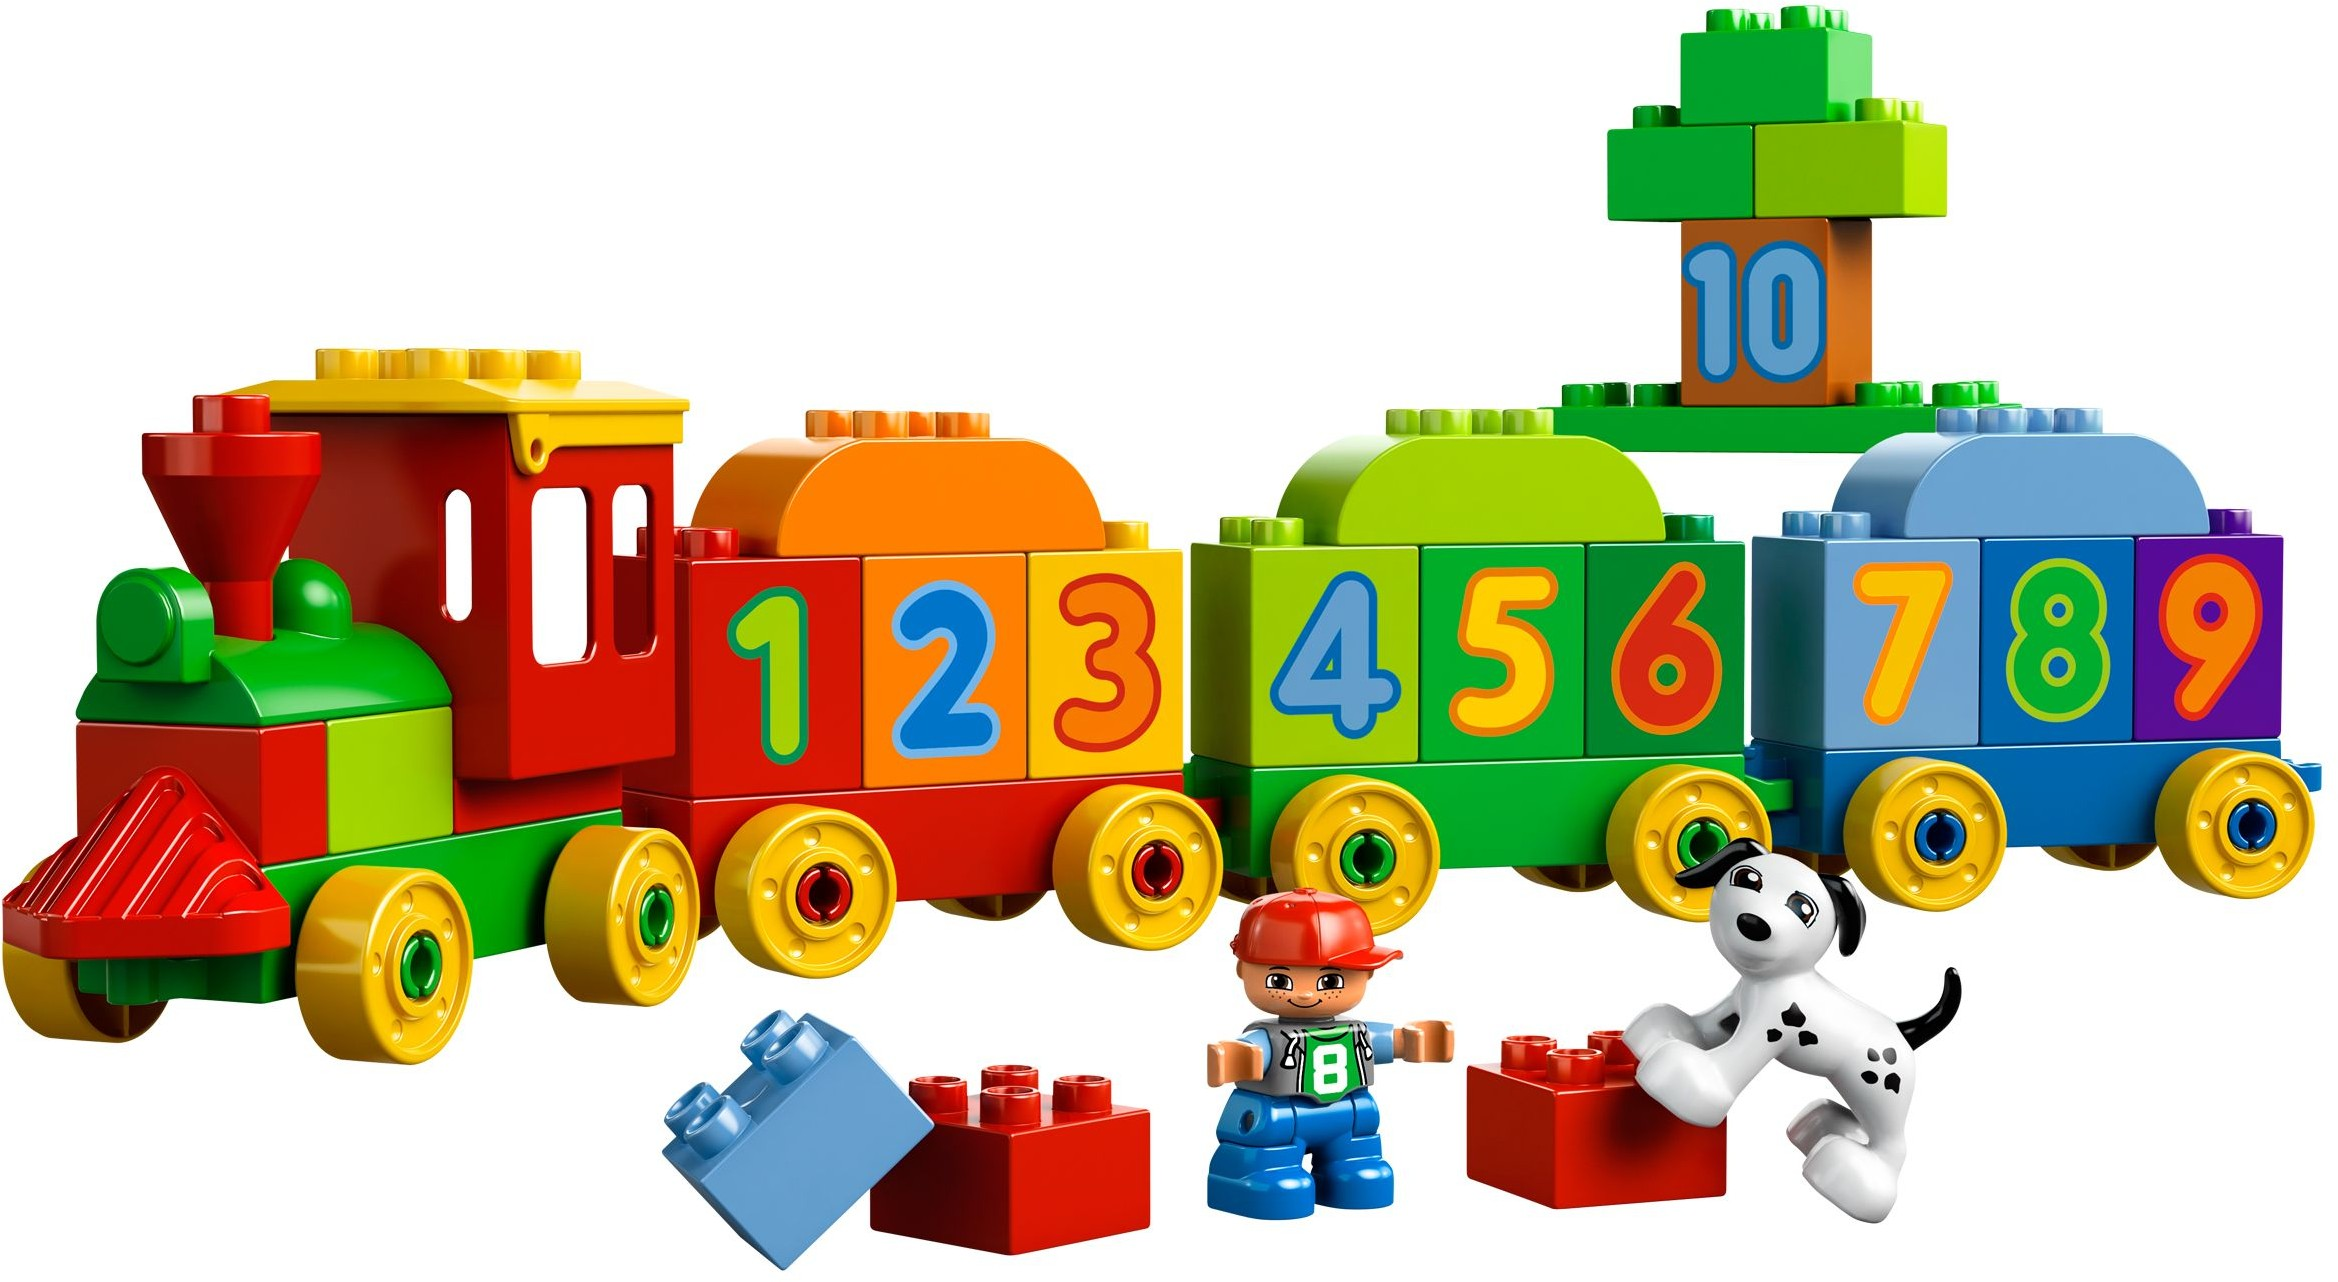 Number clipart train Lego Childrens Instructions Number toys